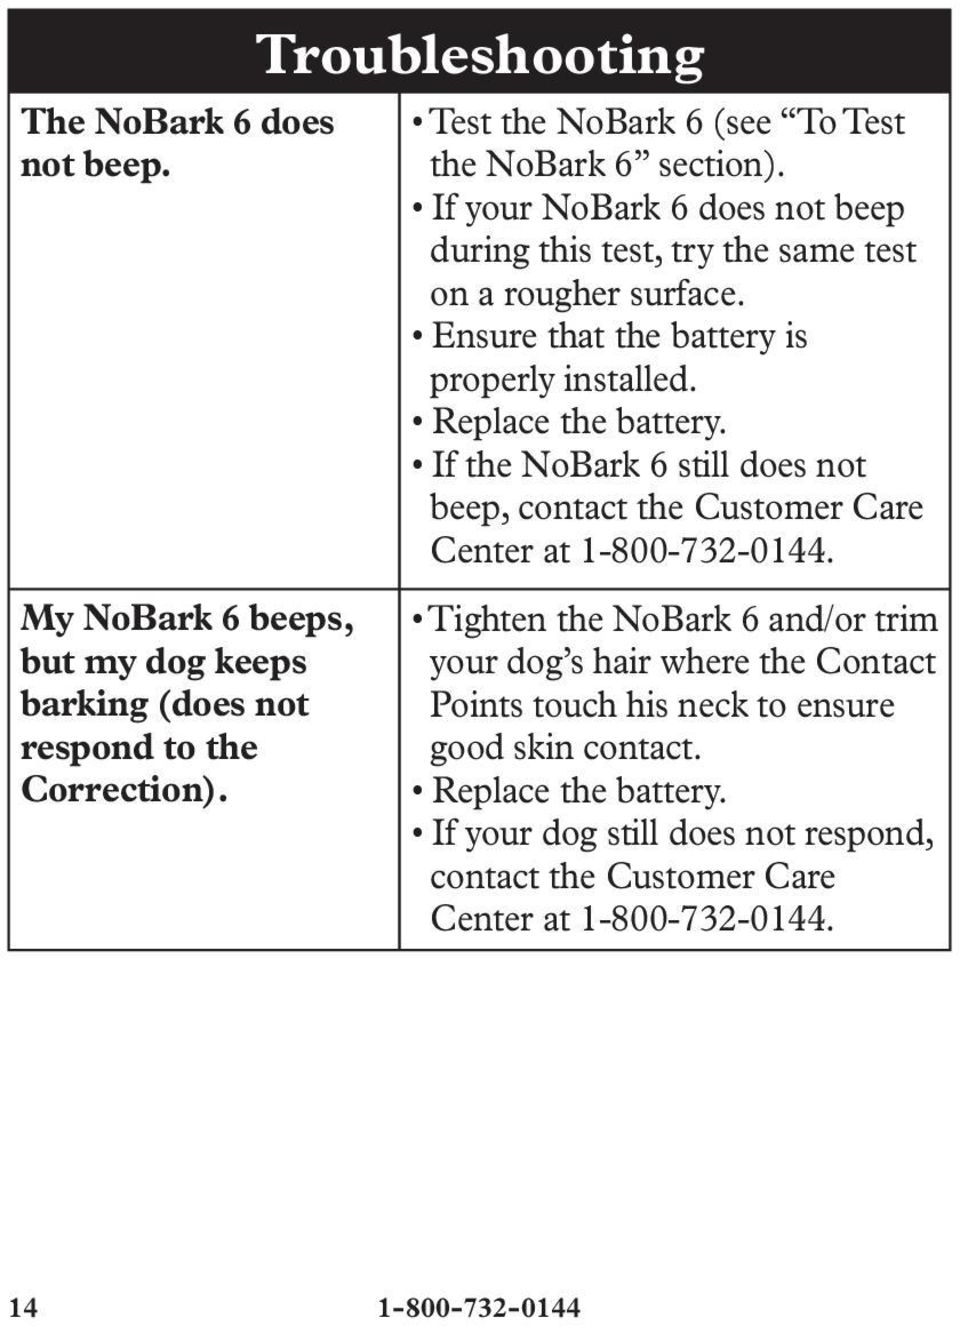 Ensure that the battery is properly installed. Replace the battery. If the NoBark 6 still does not beep, contact the Customer Care Center at 1-800-732-0144.